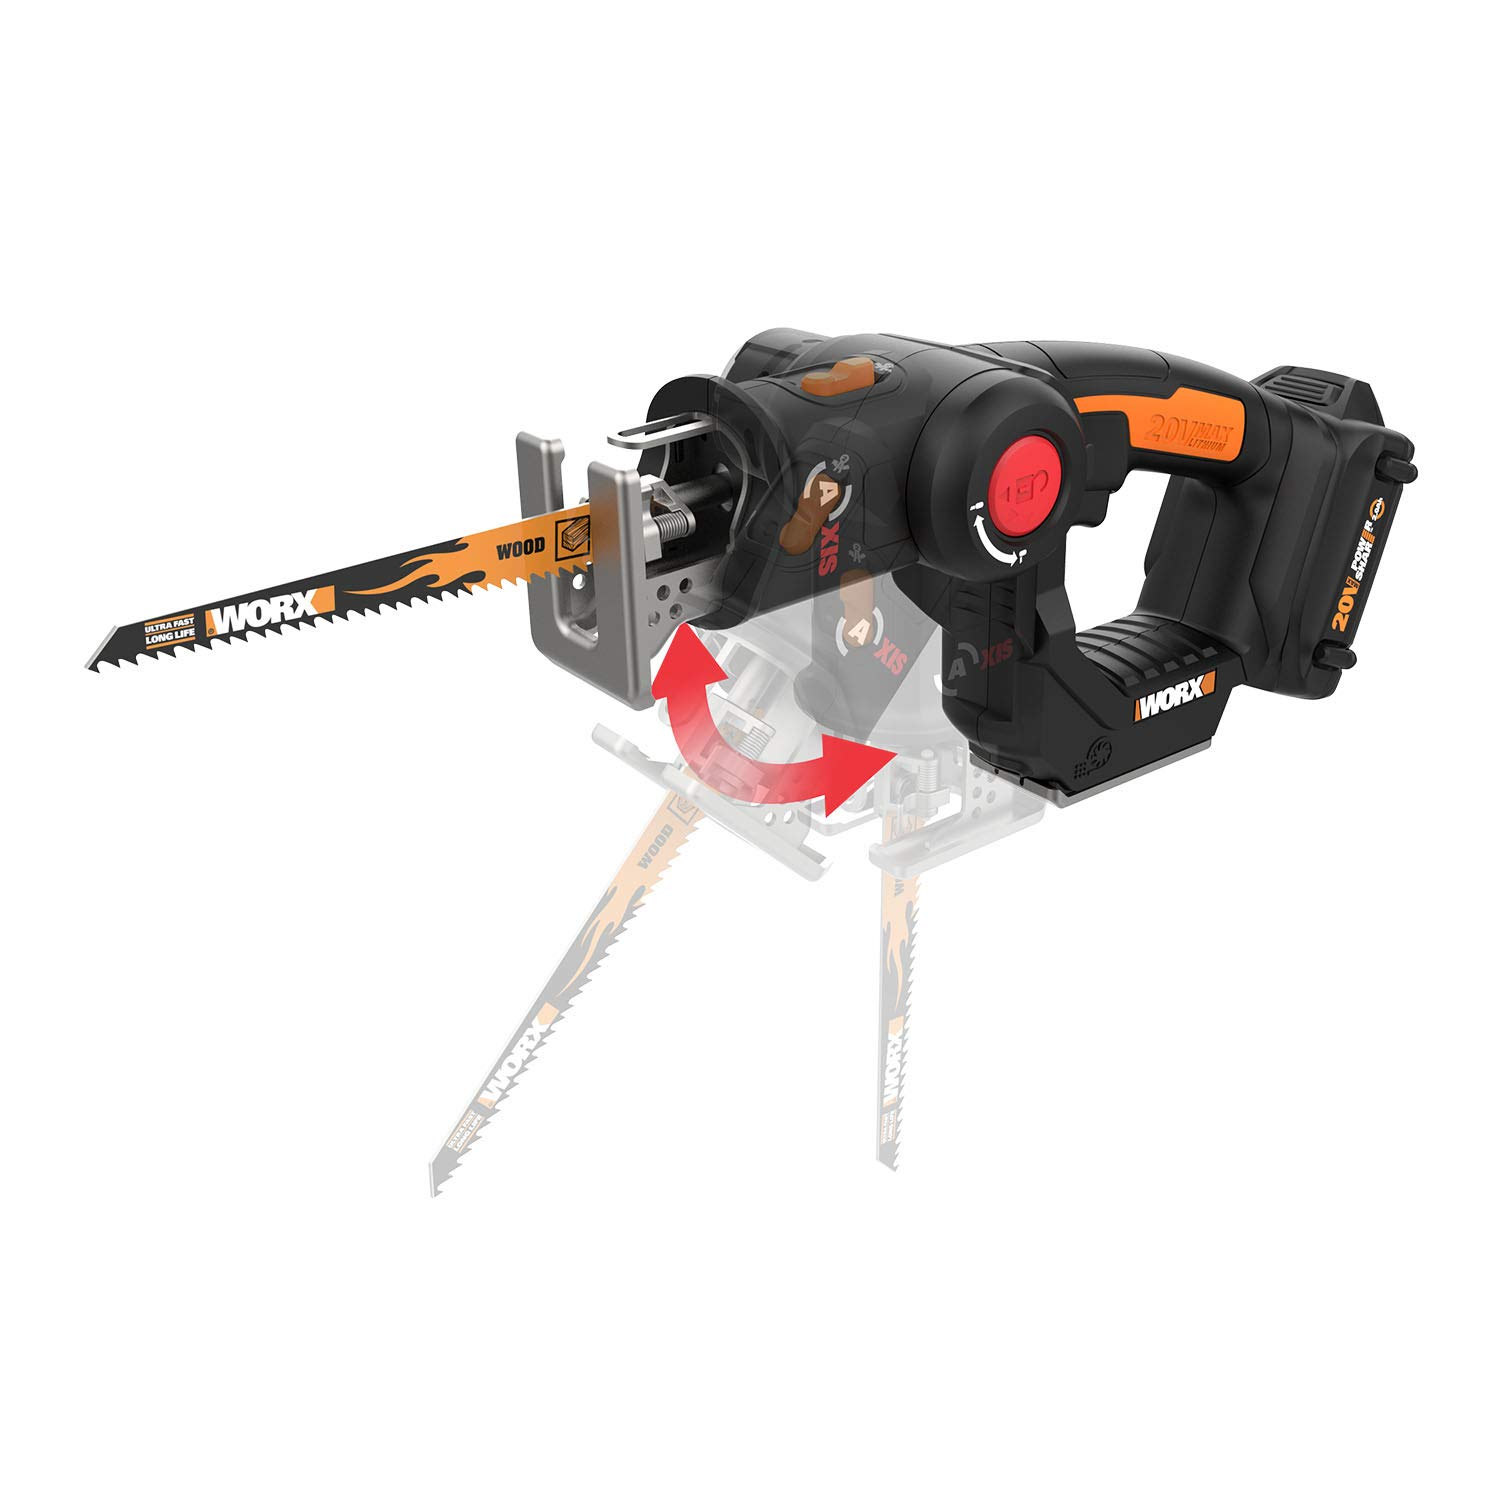 WORX WX550L 20V AXIS 2-in-1 Reciprocating Saw and Jigsaw with Orbital Mode, Variable Speed and Tool-Free Blade Change by WORX